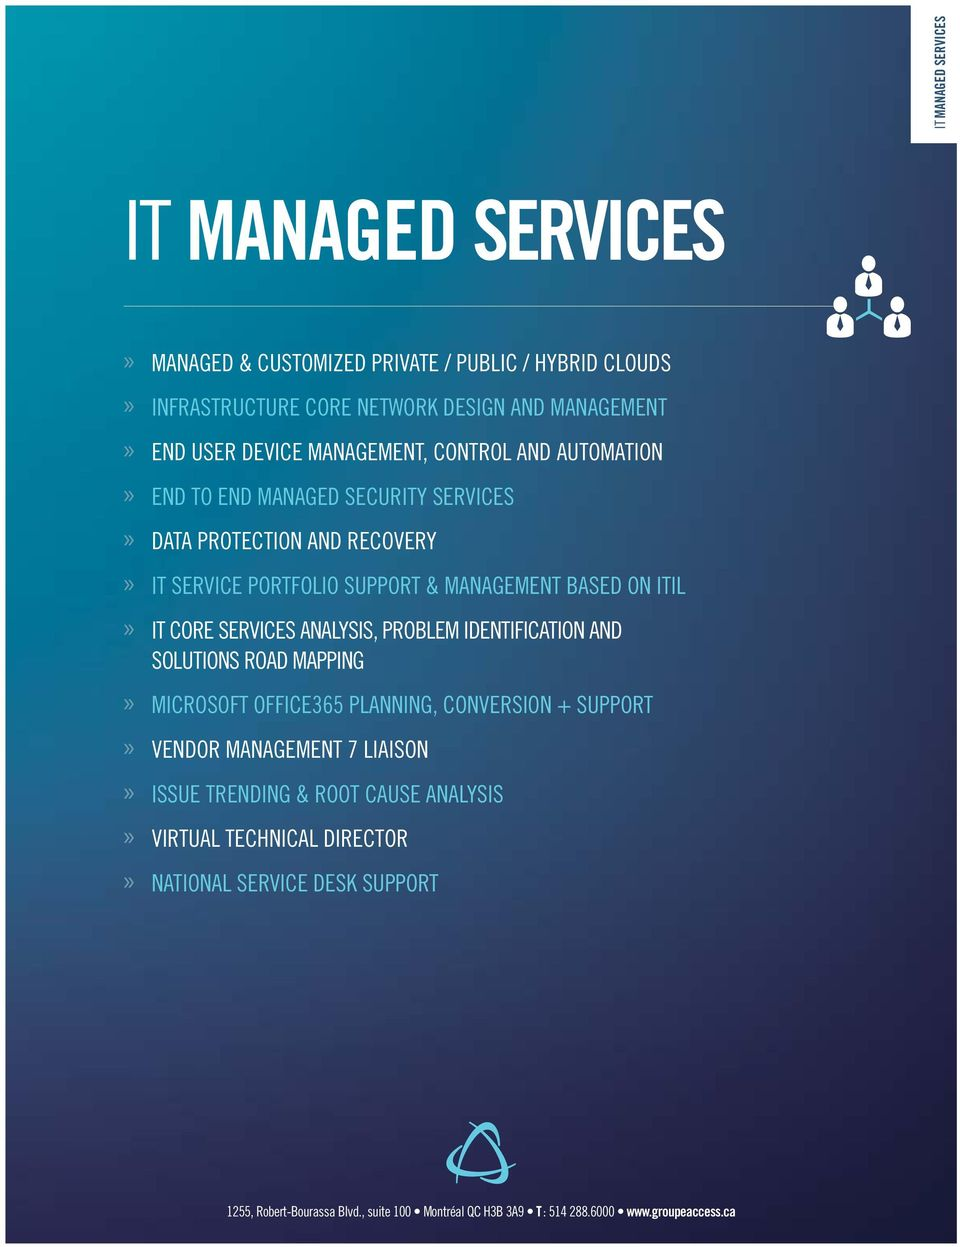 services analysis, problem identification and solutions road mapping Microsoft Office365 planning, conversion + support Vendor management 7 liaison Issue trending &